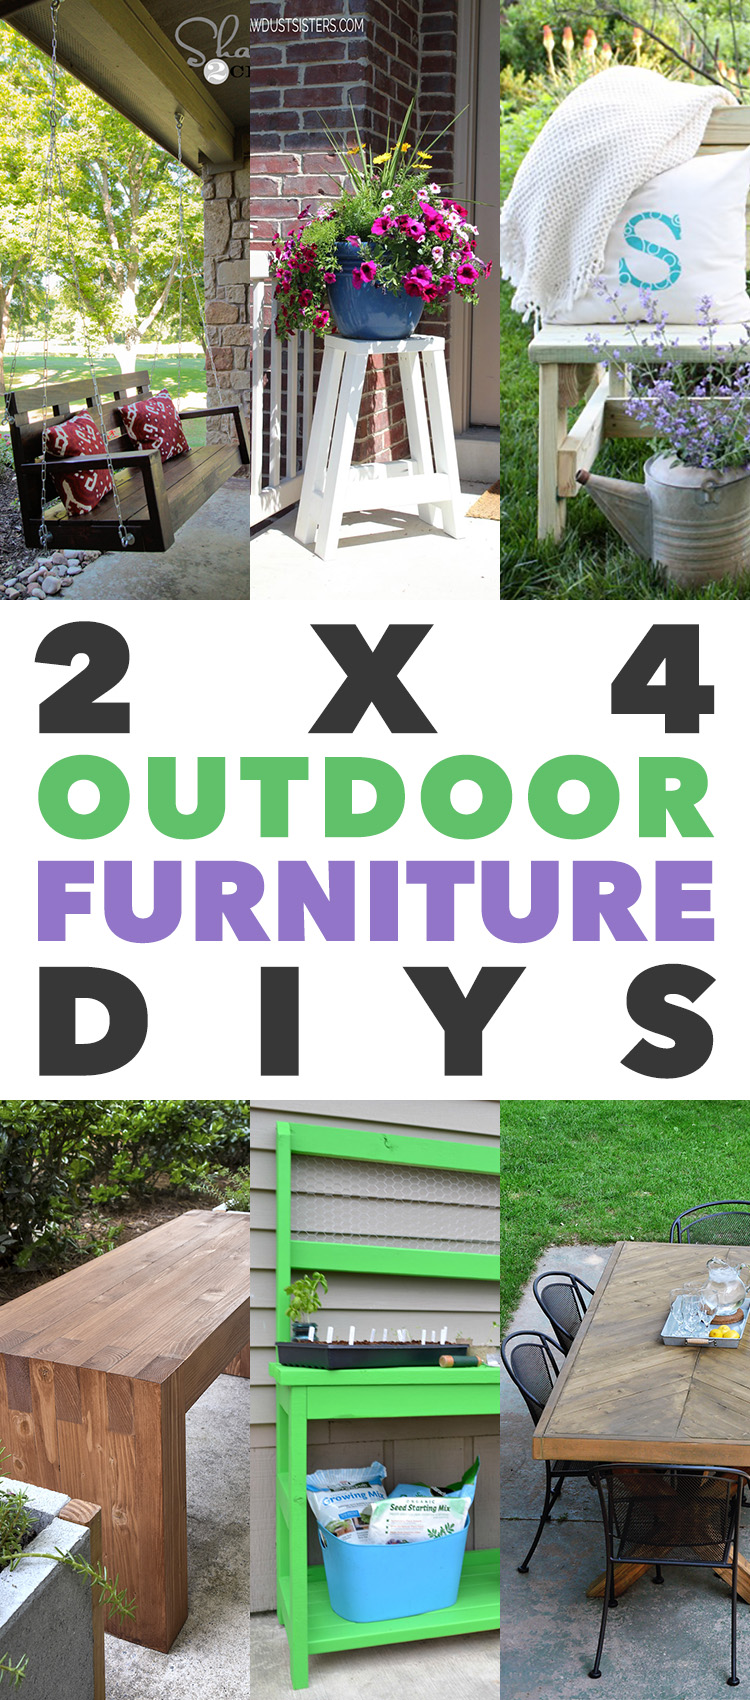 fabulous outdoor furniture you can build with 2x4s the cottage market rh thecottagemarket com 2 X 4 Furniture Plans Outdoor 2X4 Furniture